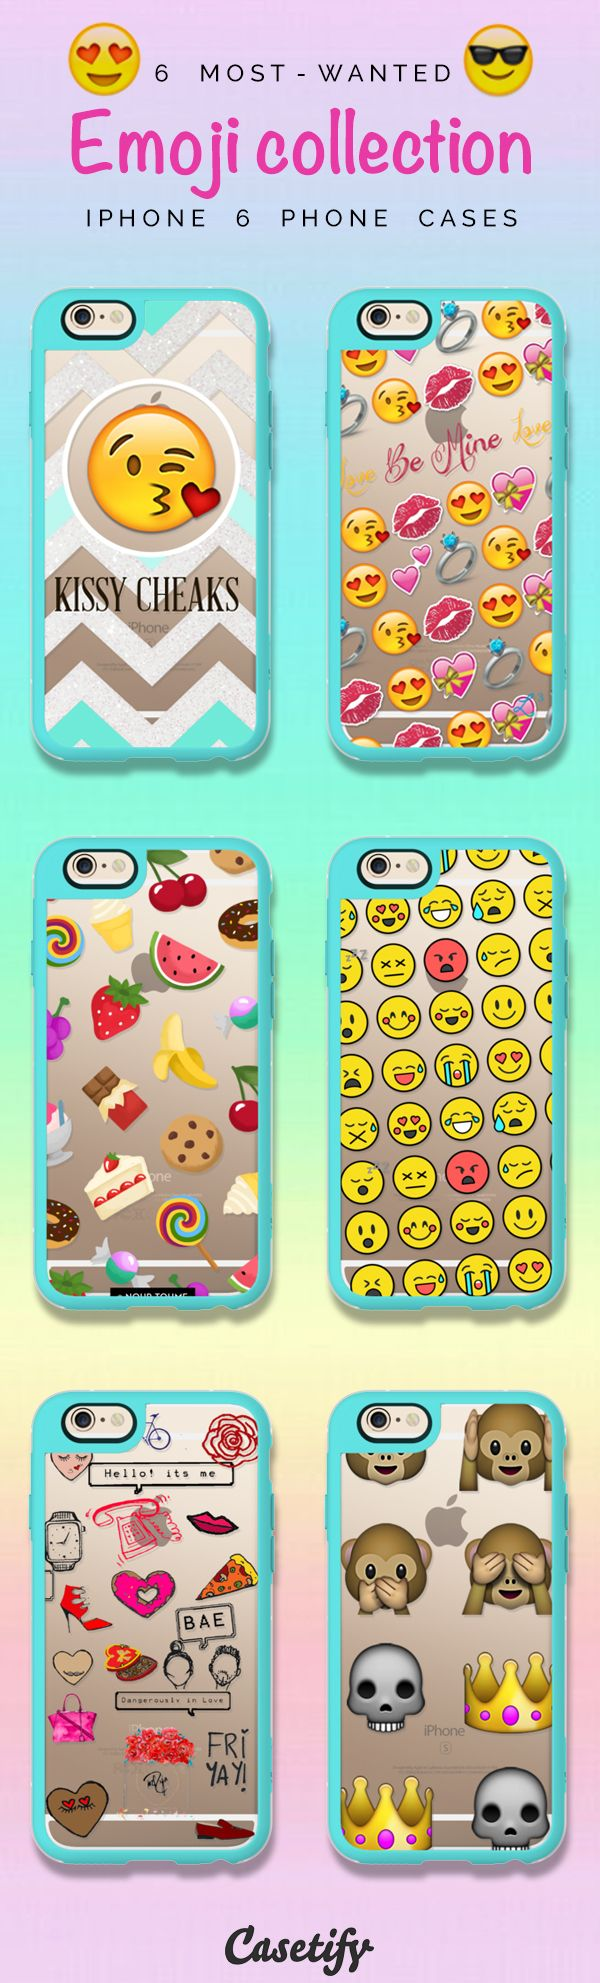 Most favourite Emoji iPhone 6 protective phone case designs | When words fail, emojis speak! Click through to see more iPhone phone case idea >>> www.casetify.com/... | Casetify - http://amzn.to/2h26UWh